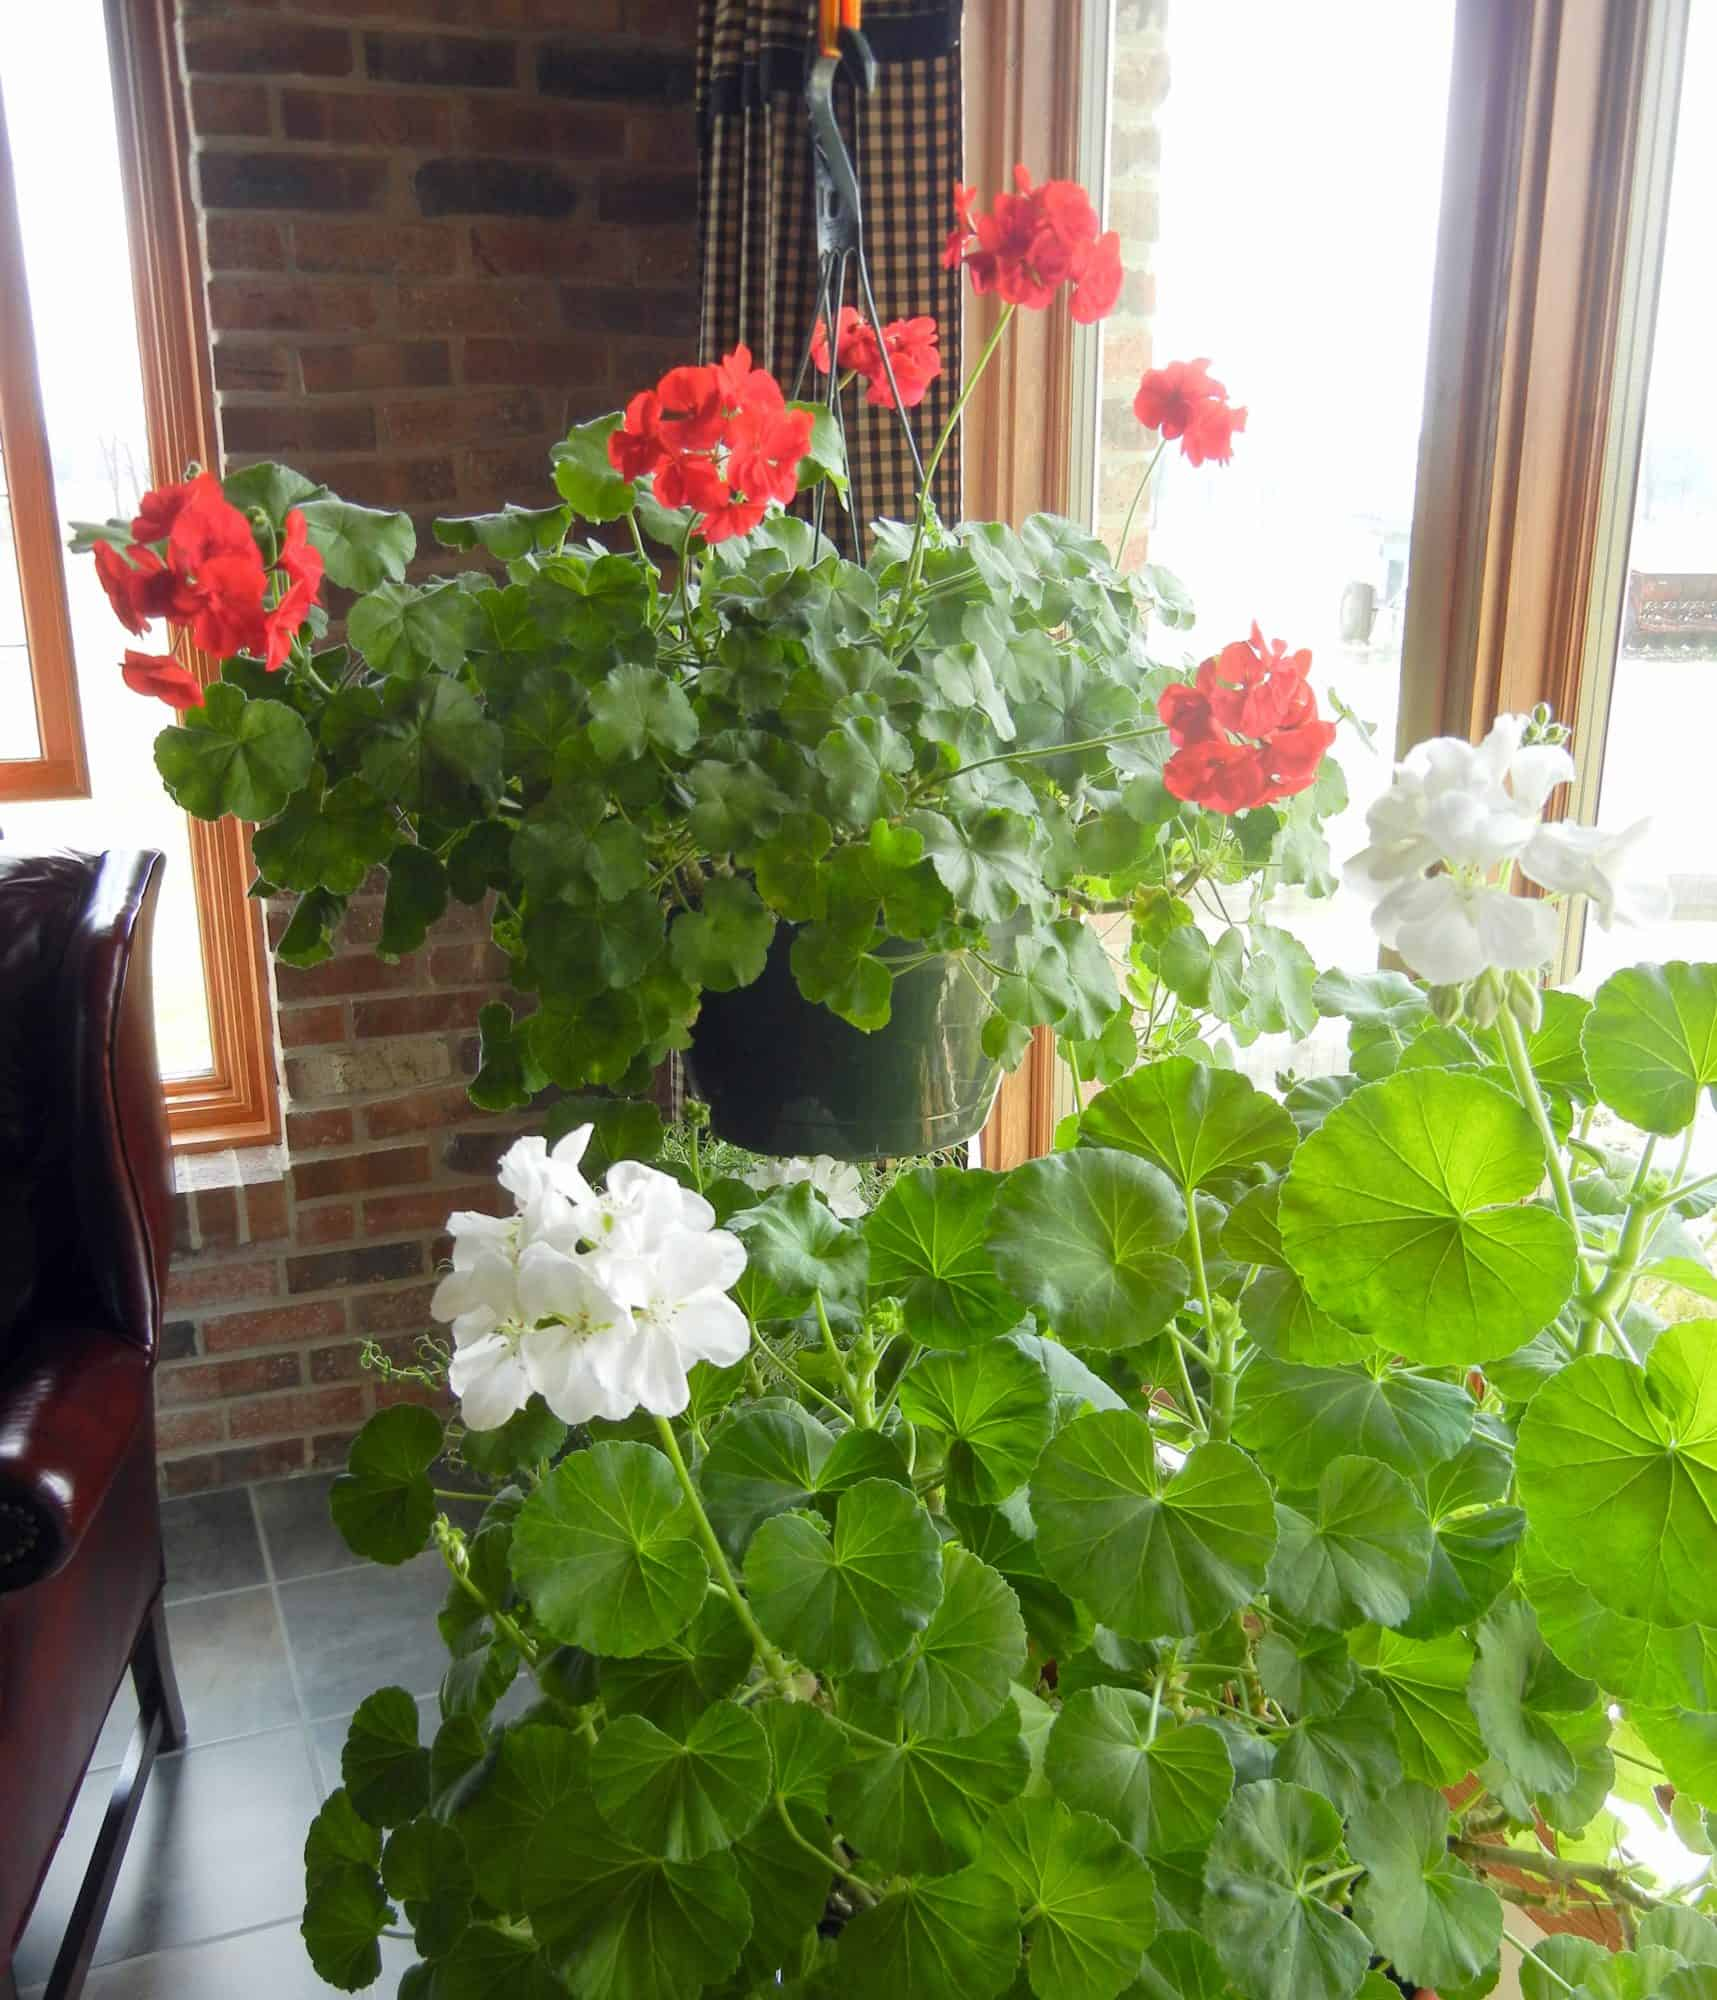 Using Color In Winter, To Cheer The Home & Heart. Geraniums in my window